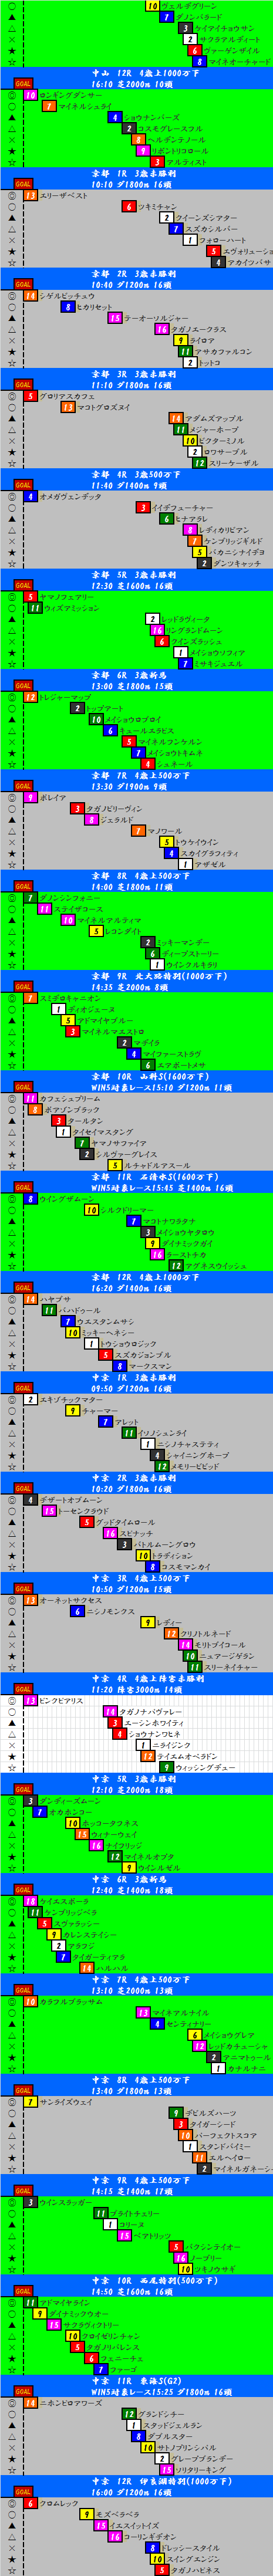 201401262.png